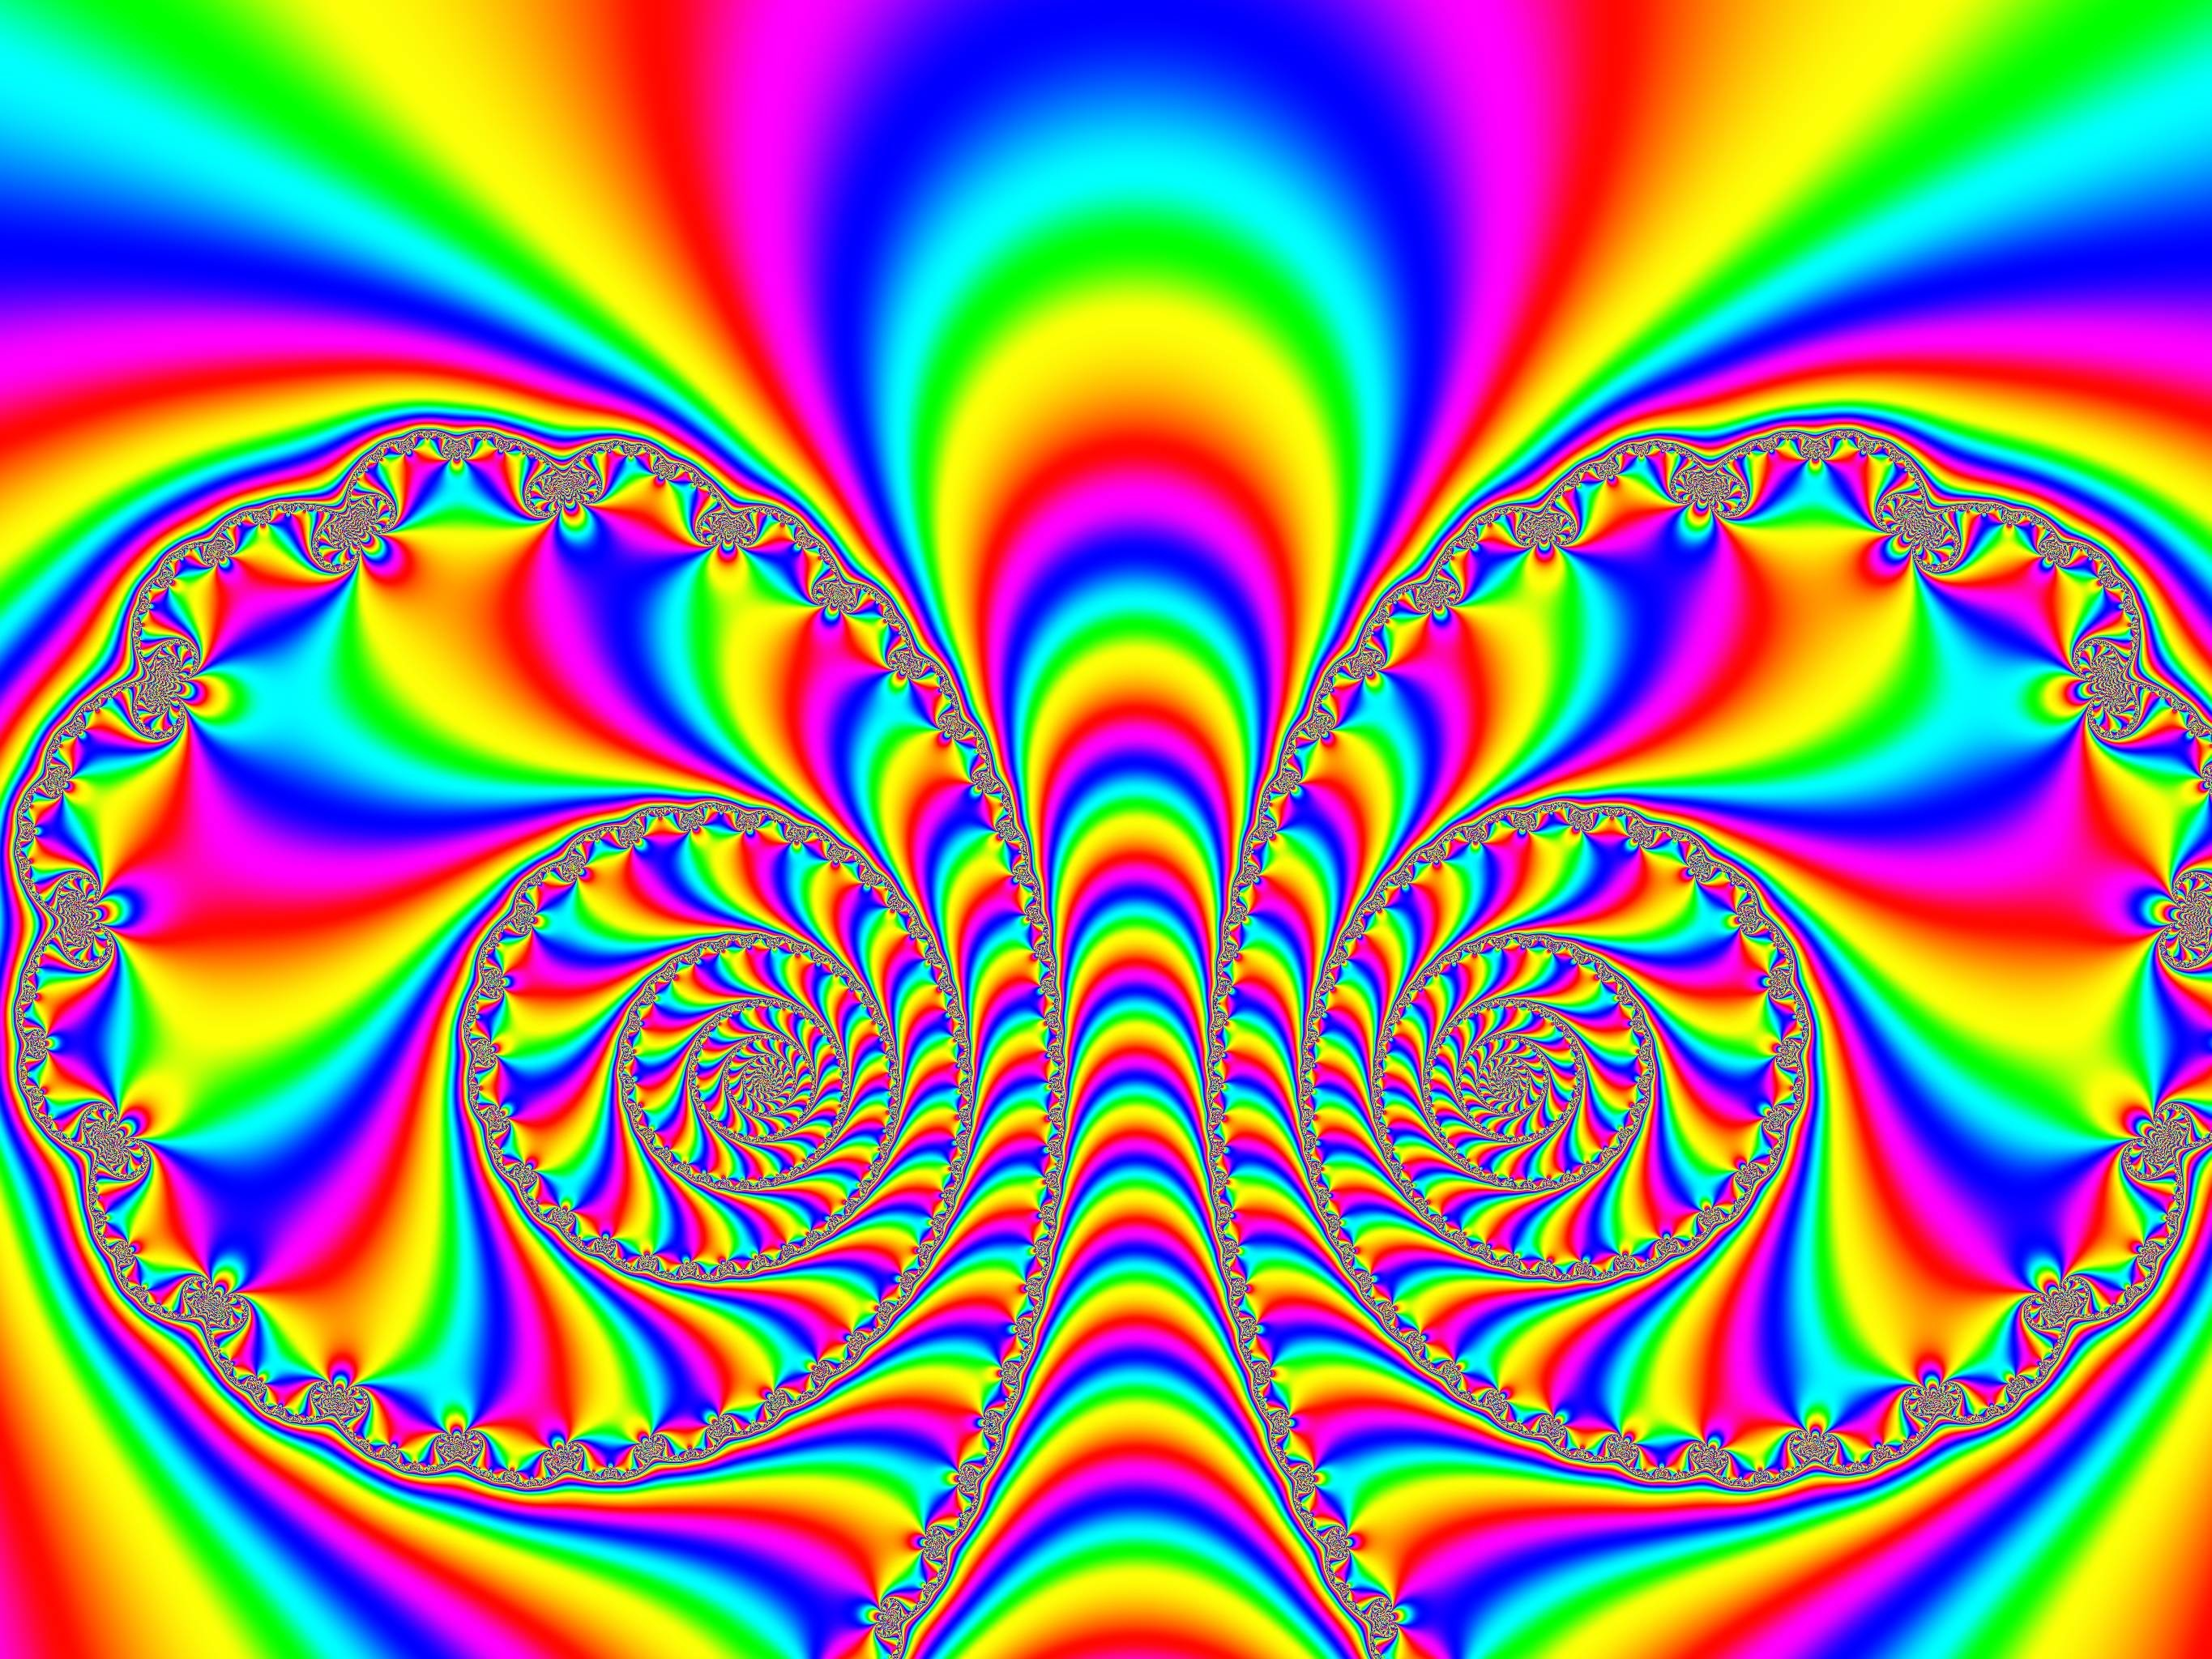 Trippy wallpapers are unique desktop backgrounds that create powerful  optical illusions for your eyes.